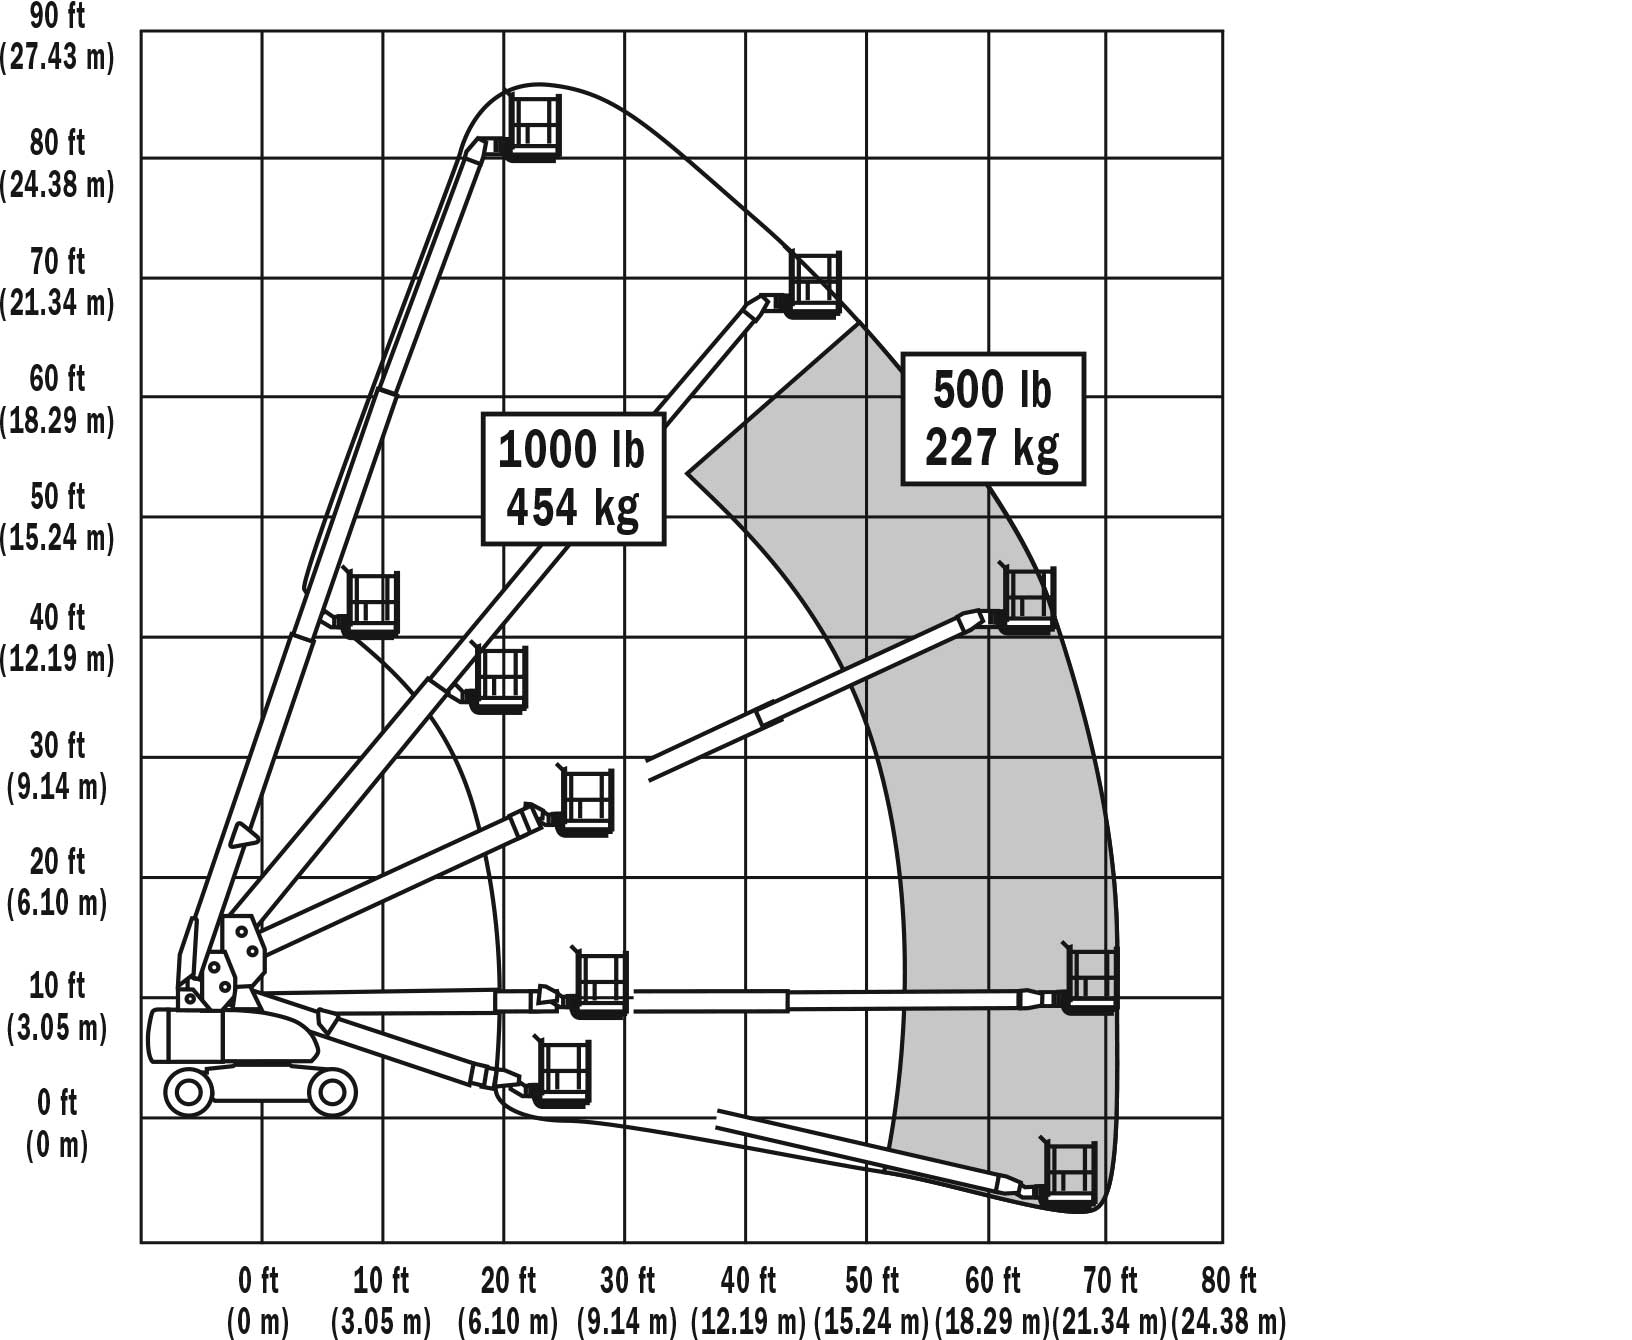 Wiring Diagram For Jlg Lift - Wikishare